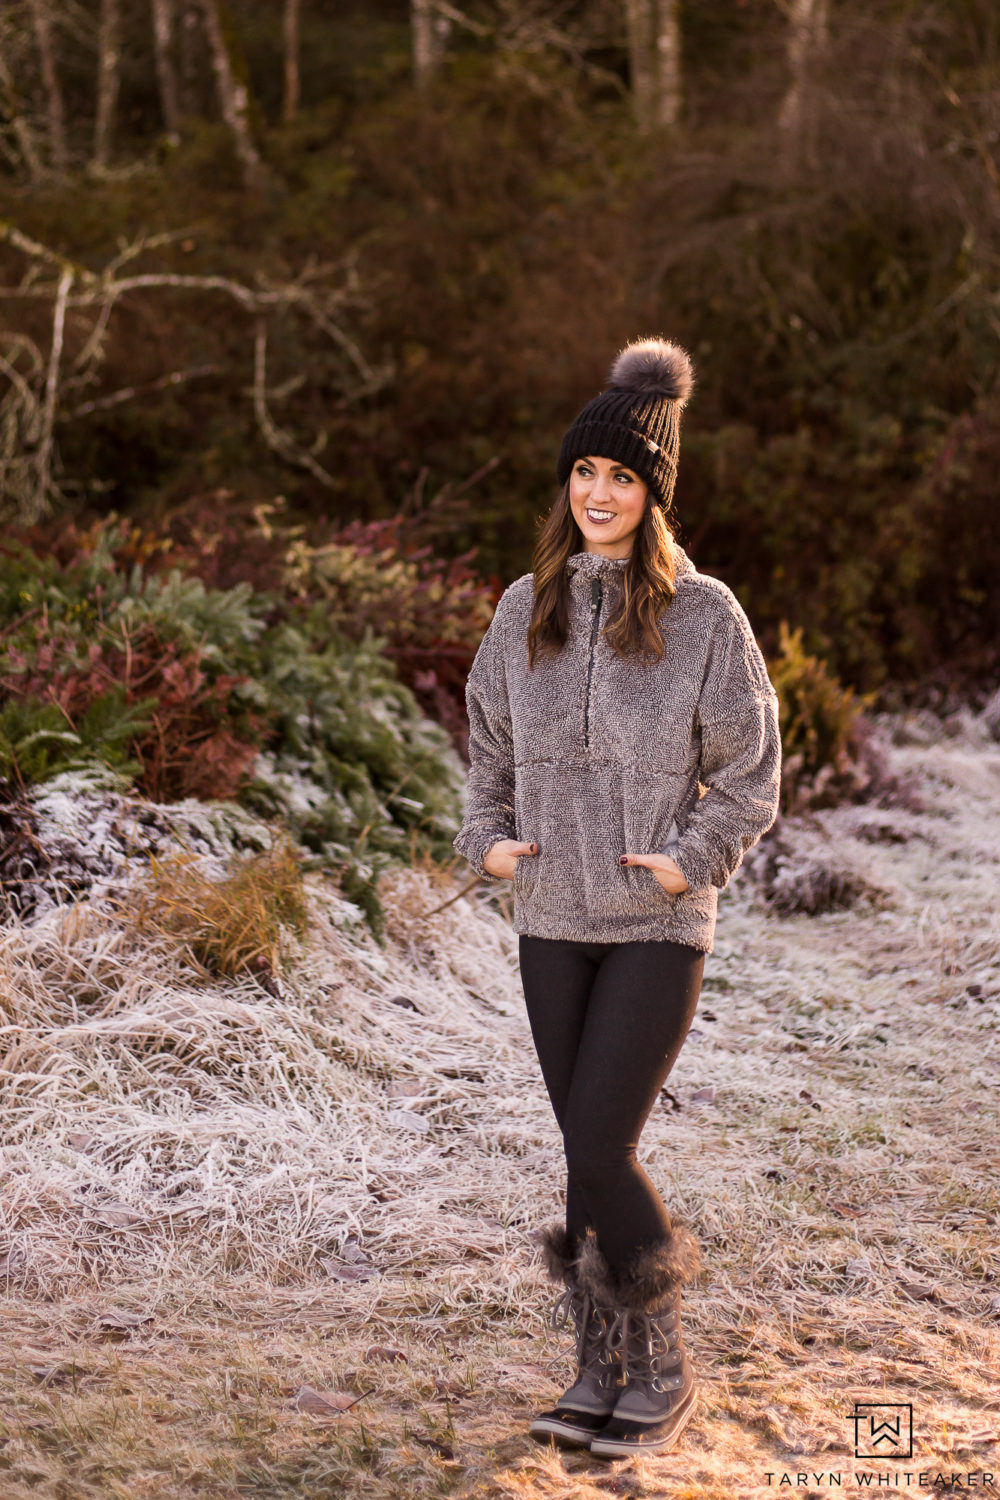 @tarynwhiteaker_designs's cover photo for 'Bundle Up In These Cozy Winter Fashion Finds - Taryn Whiteaker'